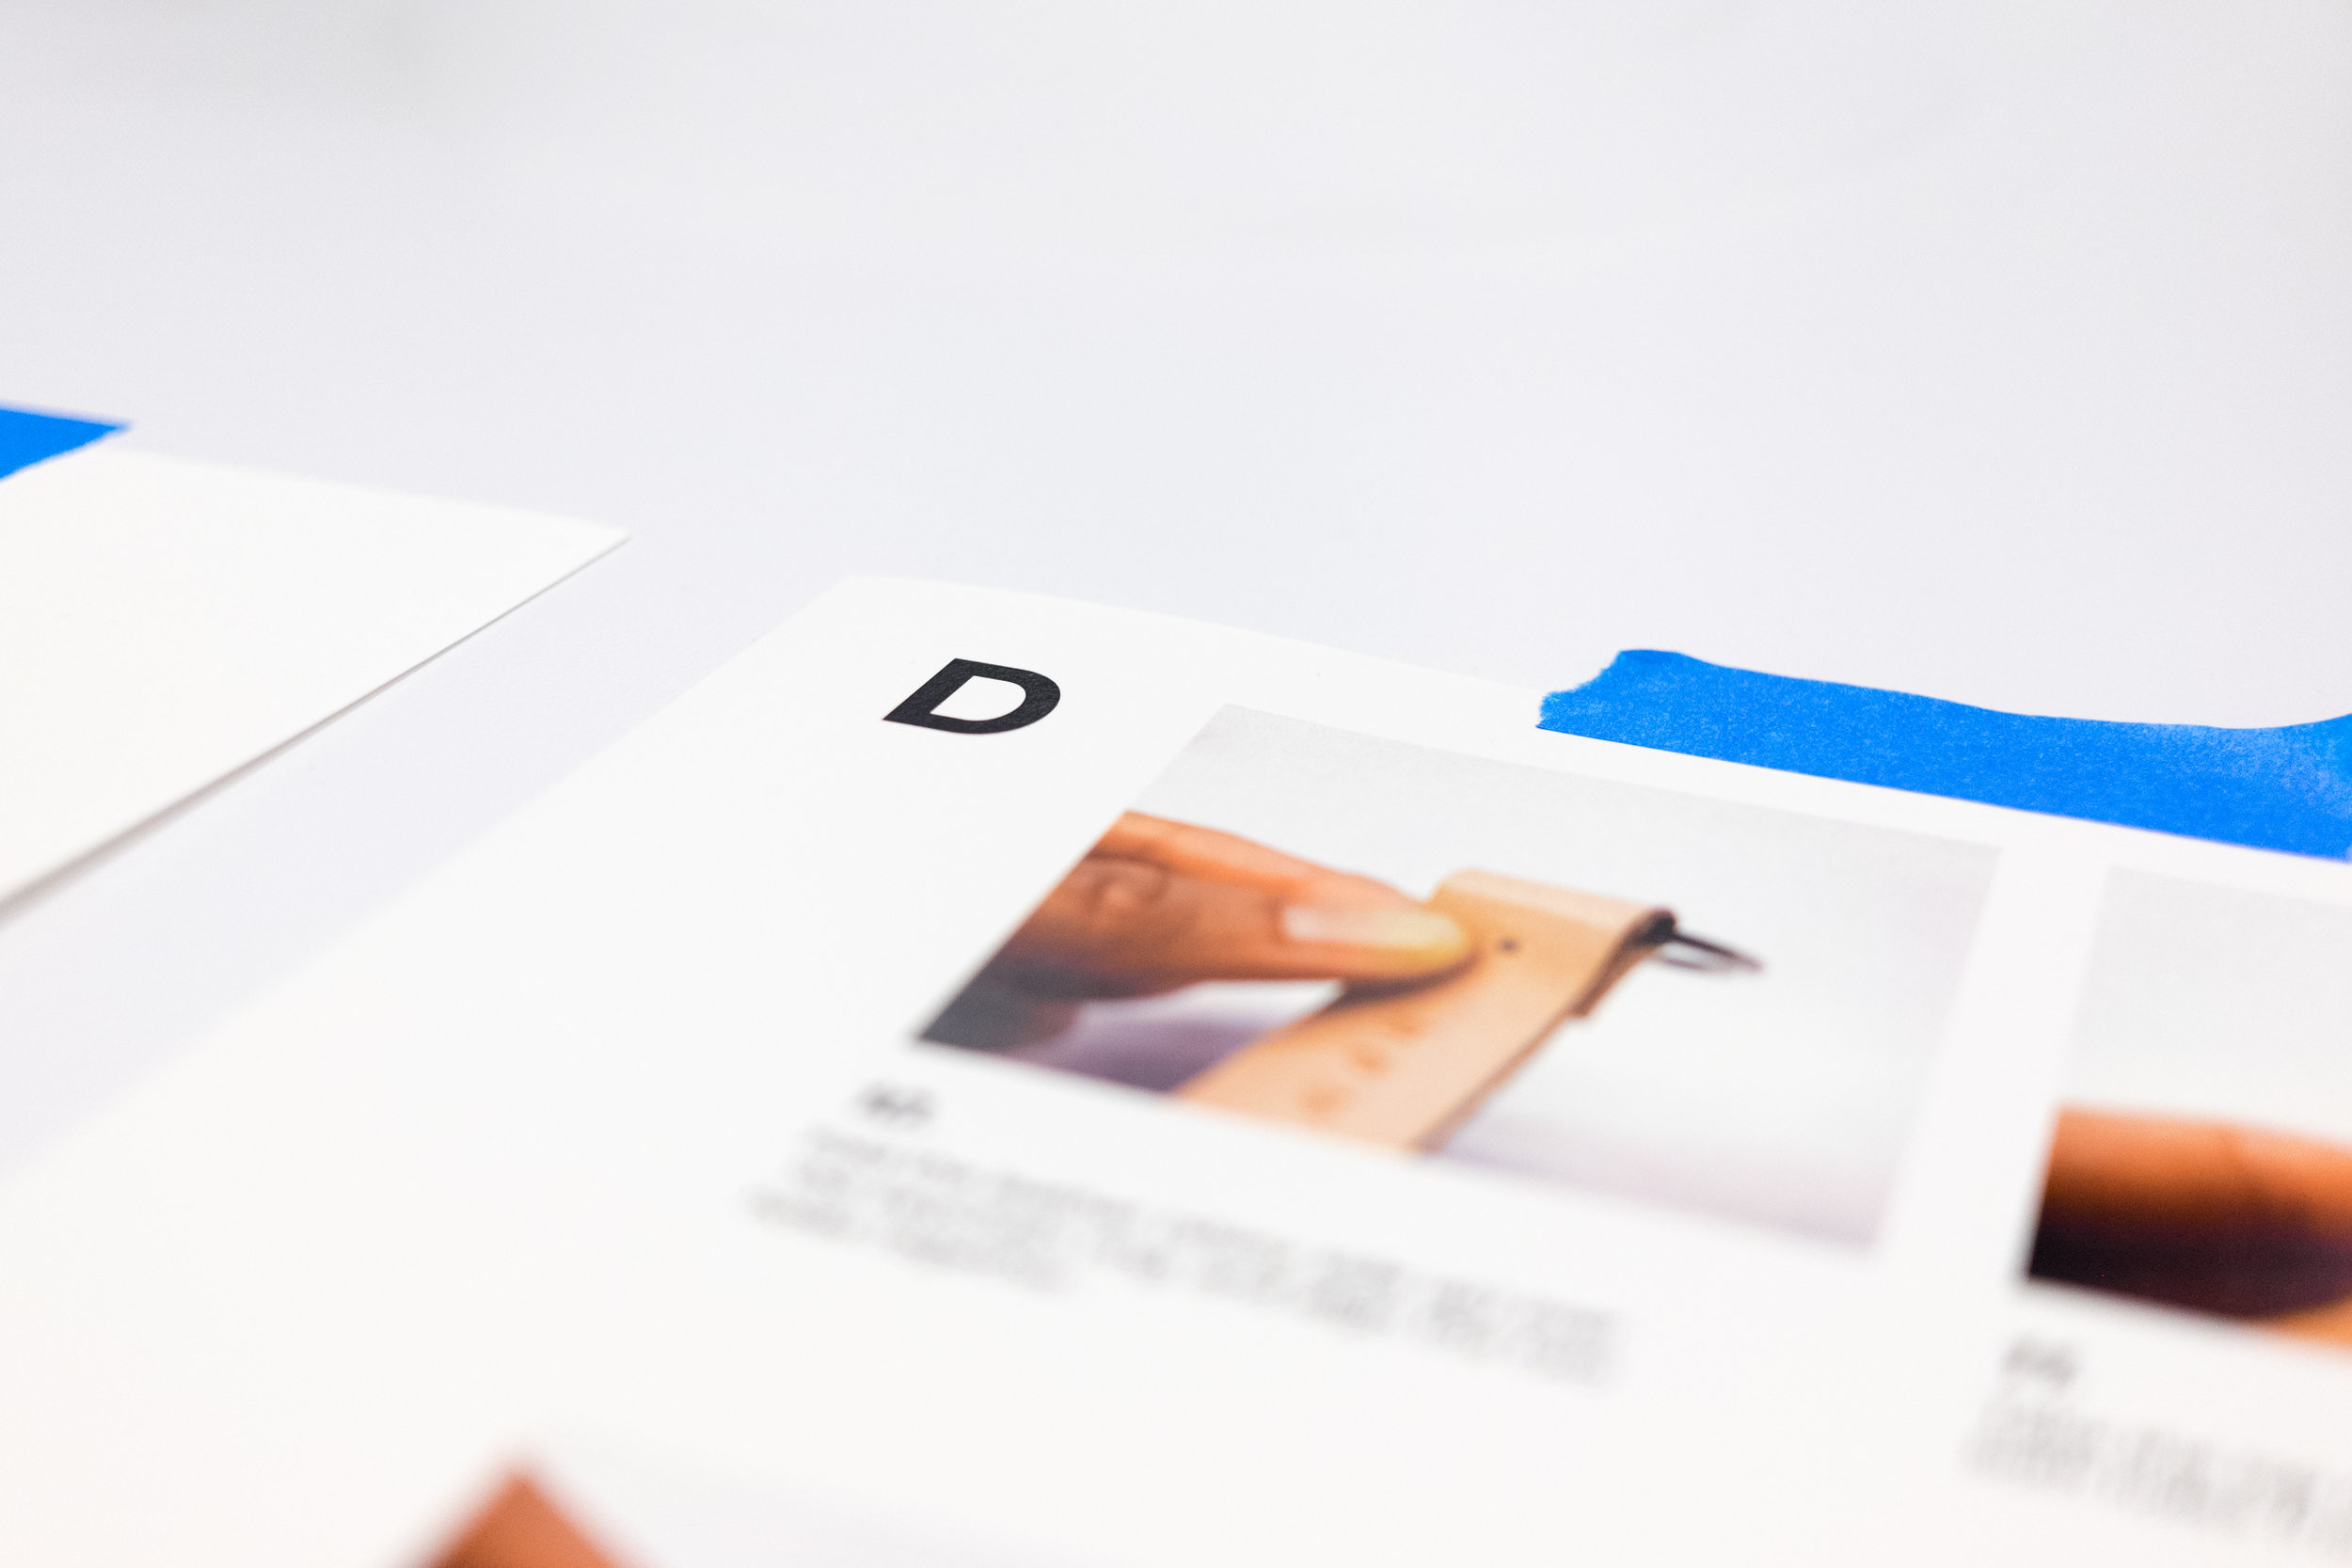 Graphic Design - Our design philosophy is rooted in communicating with clarity and delivering with strong attention to detail. We produce websites, print materials, merchandise, environments and social media visuals for a range of clients.